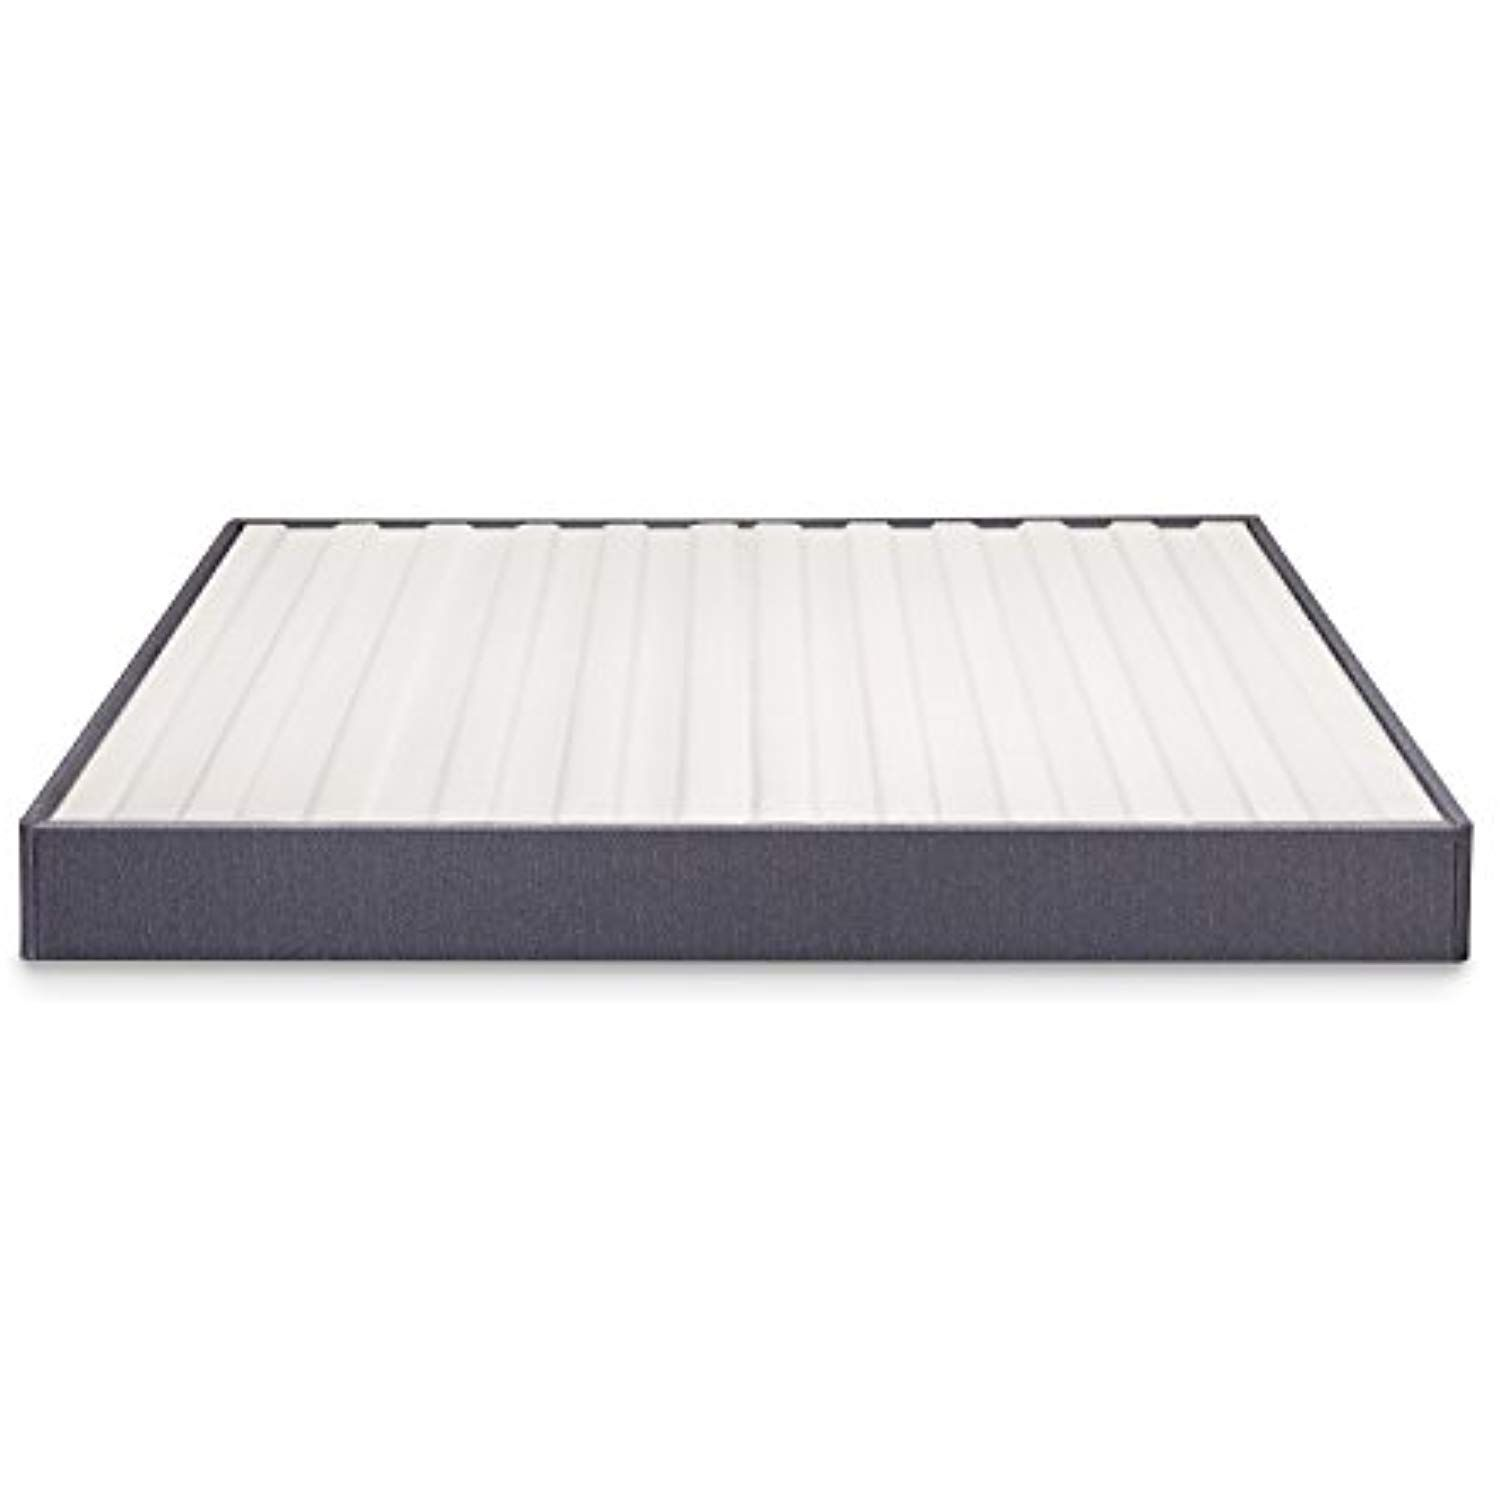 Zinus 7 5 Inch Essential Box Spring Mattress Foundation Easy Assembly Required Queen Be Sure To Check Out This Awesome Product Zinus Box Spring Metal Box